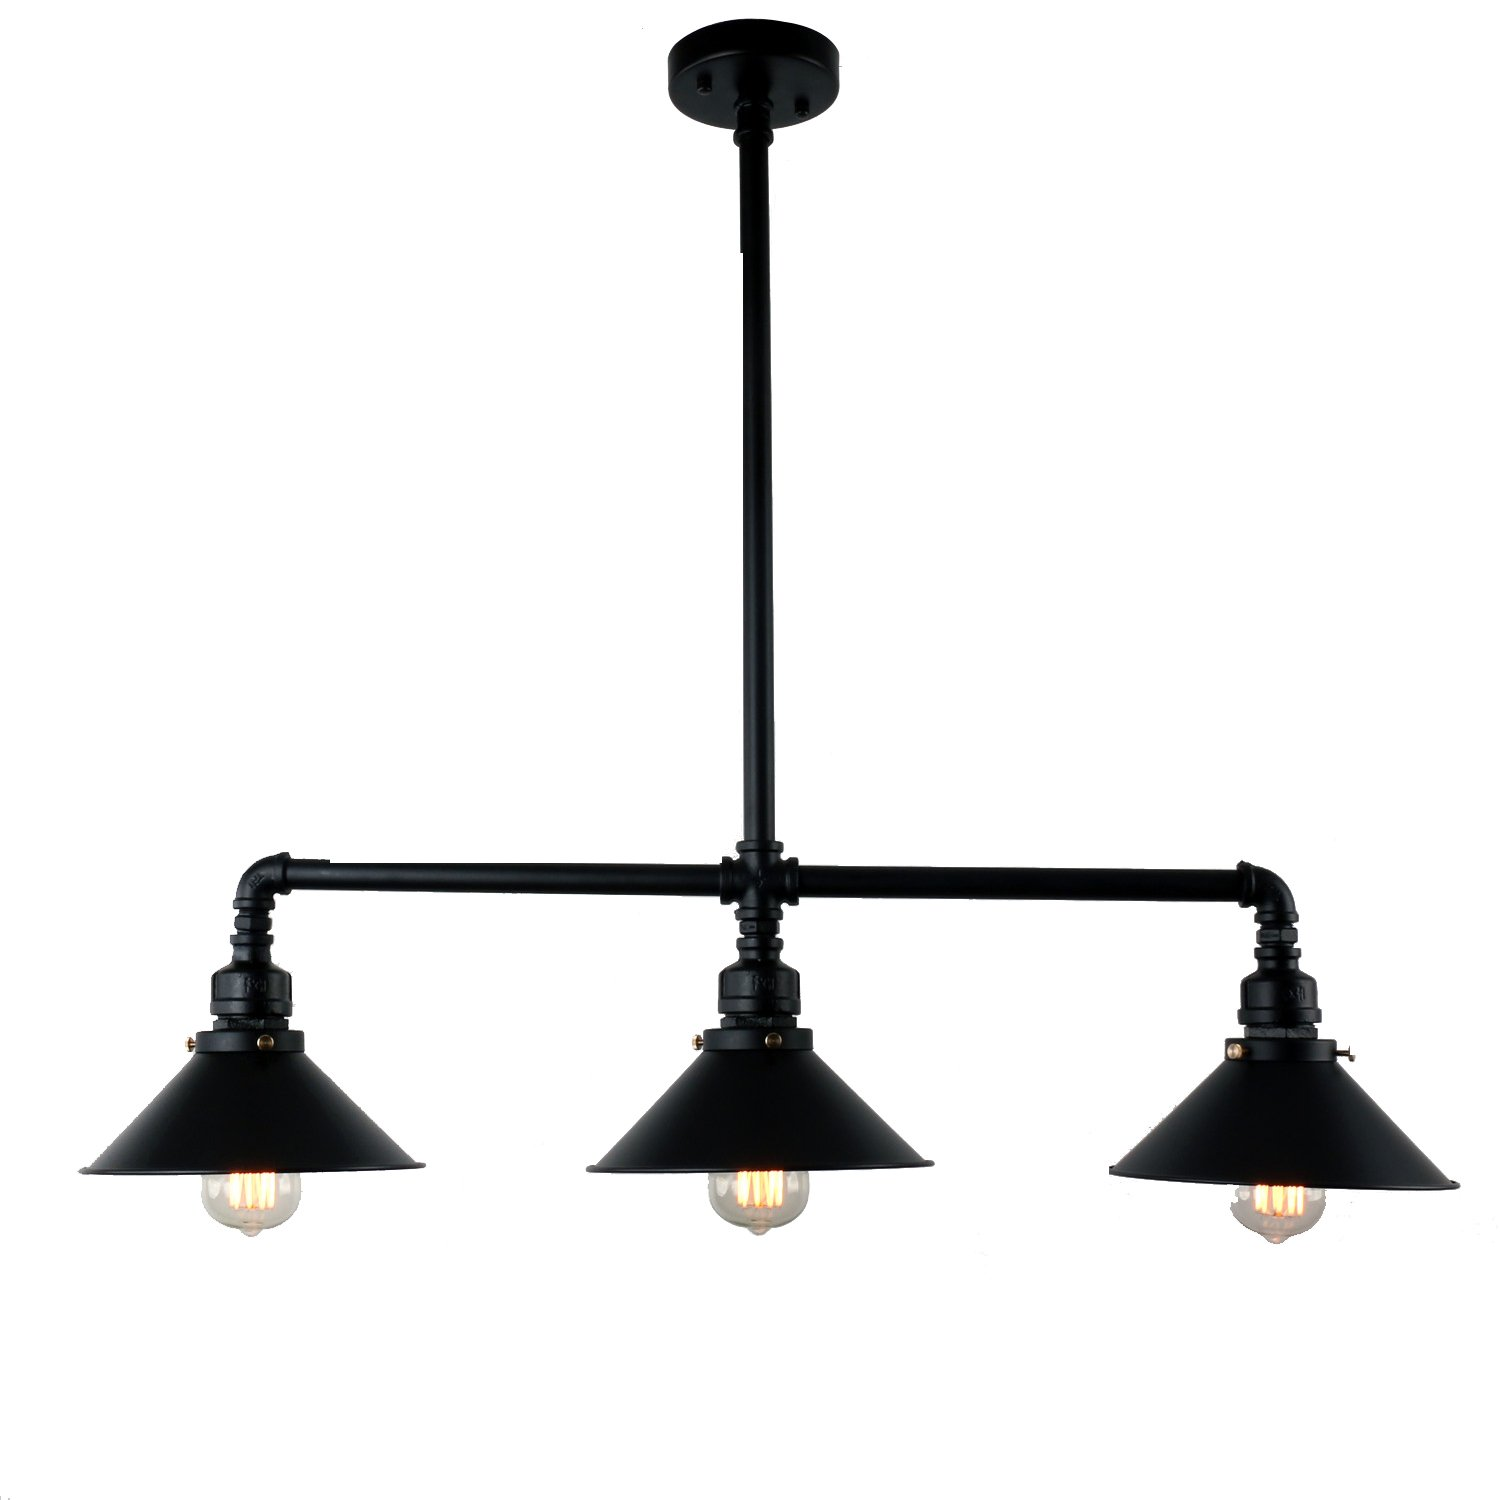 light lampsy strap products nordlux black pendant collection